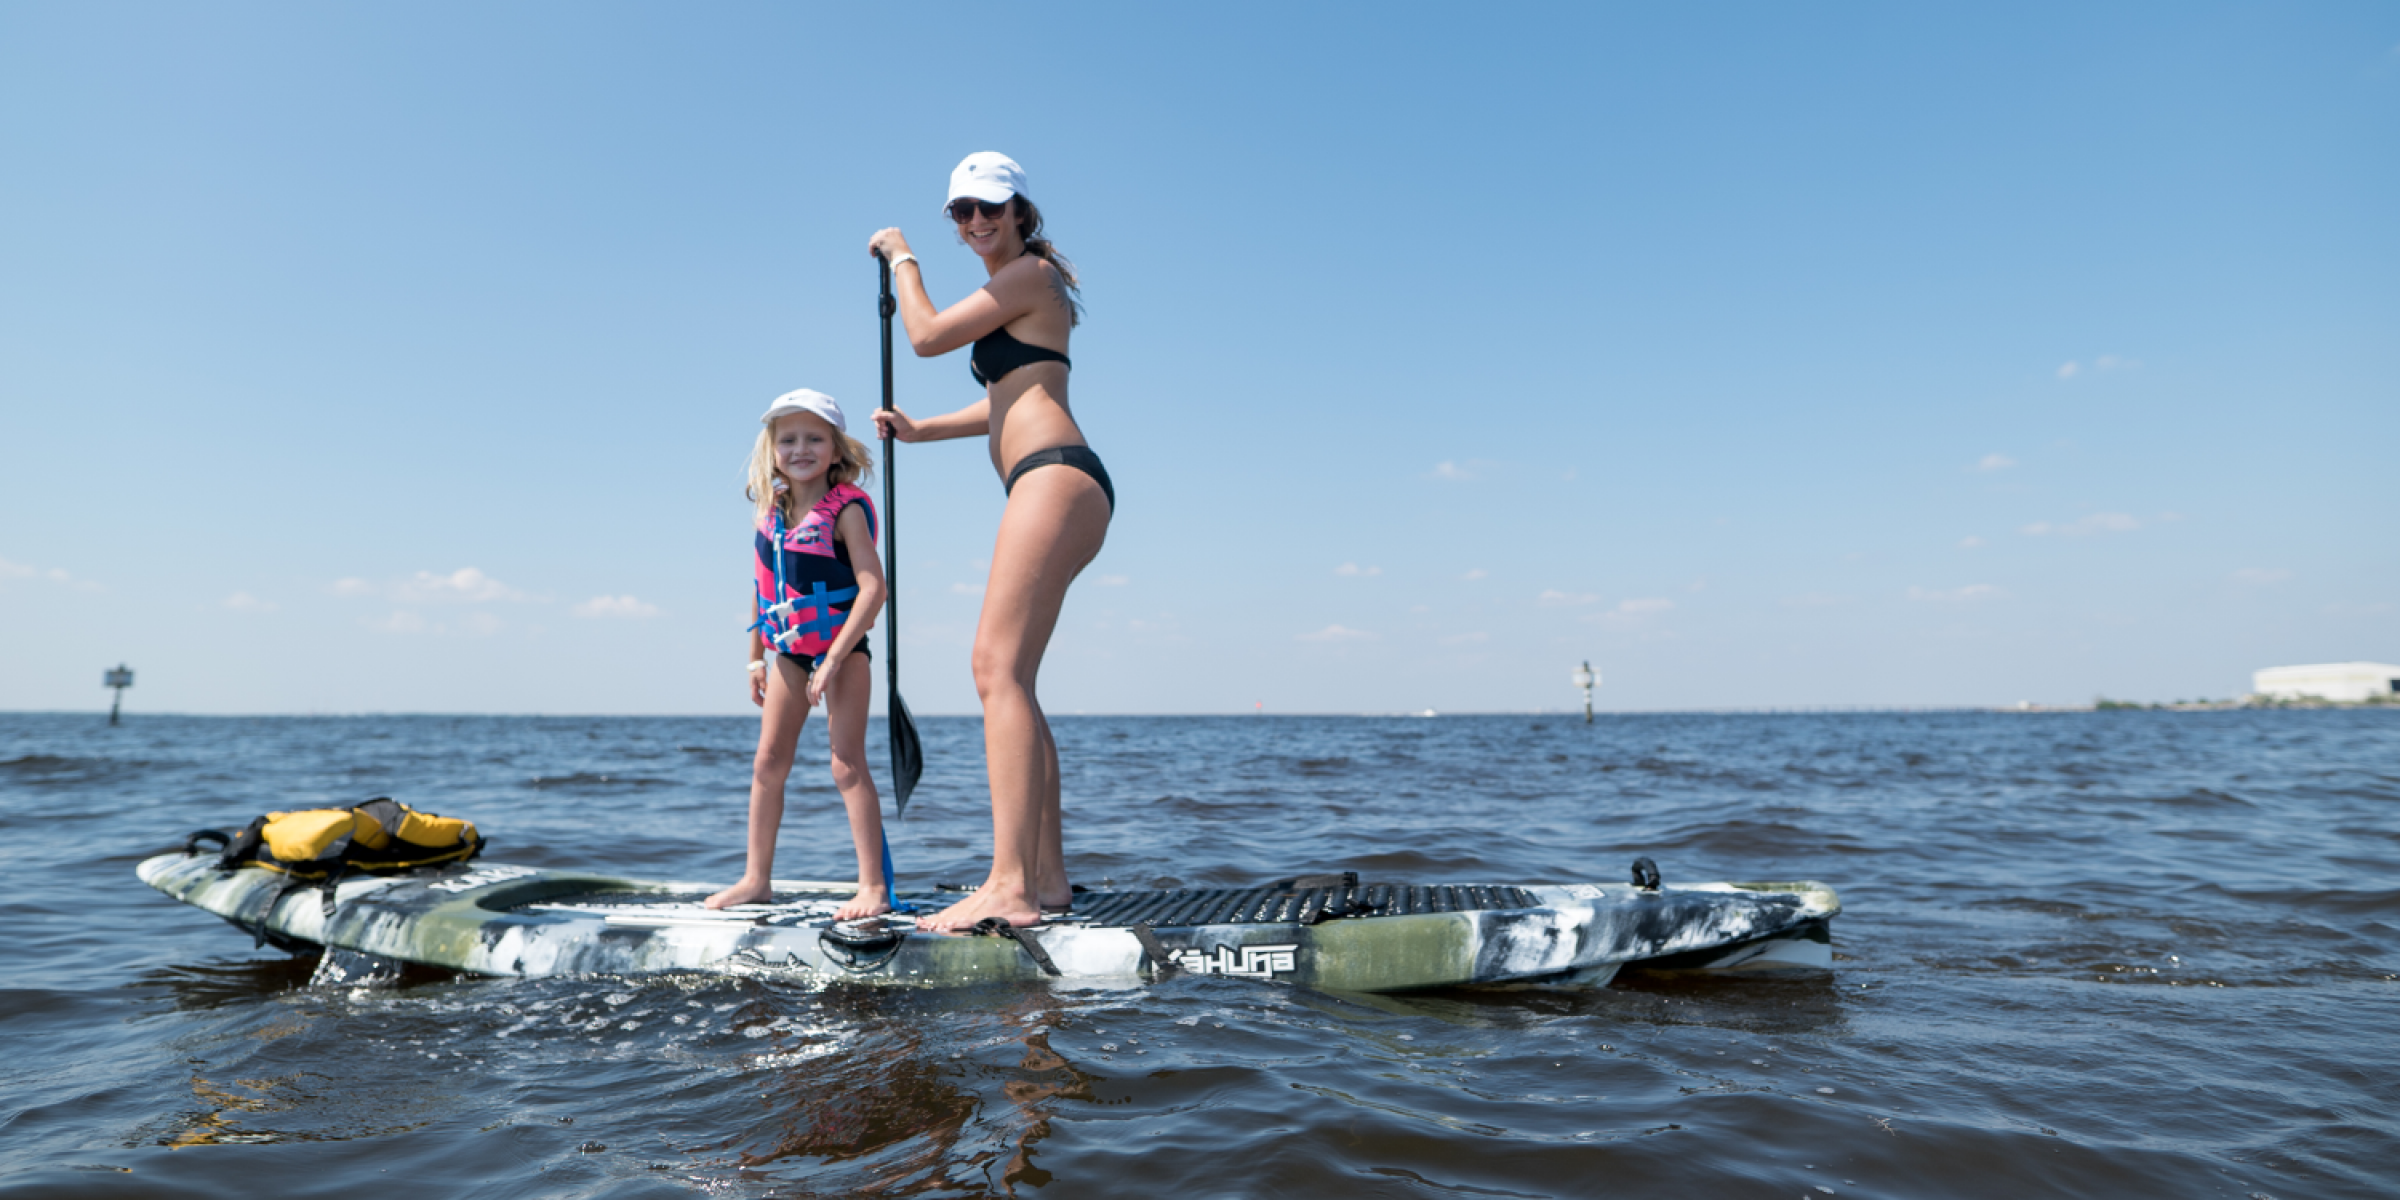 Get Up & SUP! Intro to Stand Up Paddle Boarding